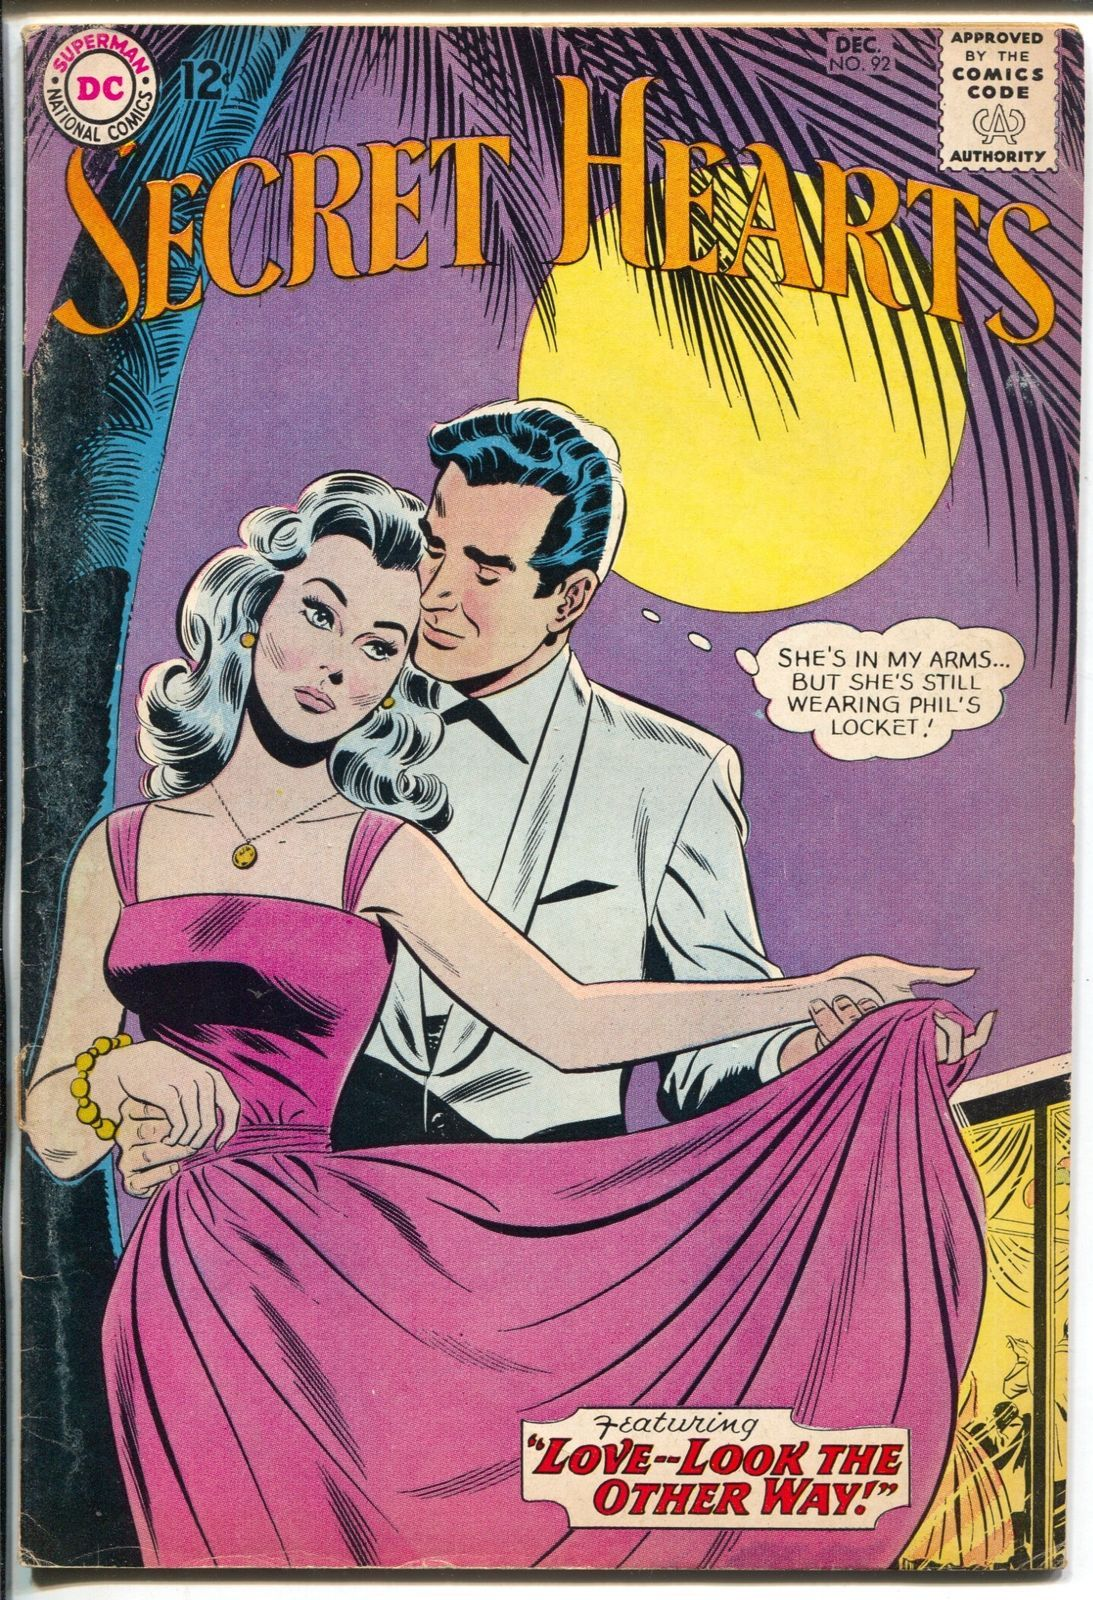 Secret Hearts #92 1963-DC-monnlight night cover-romance-VG+